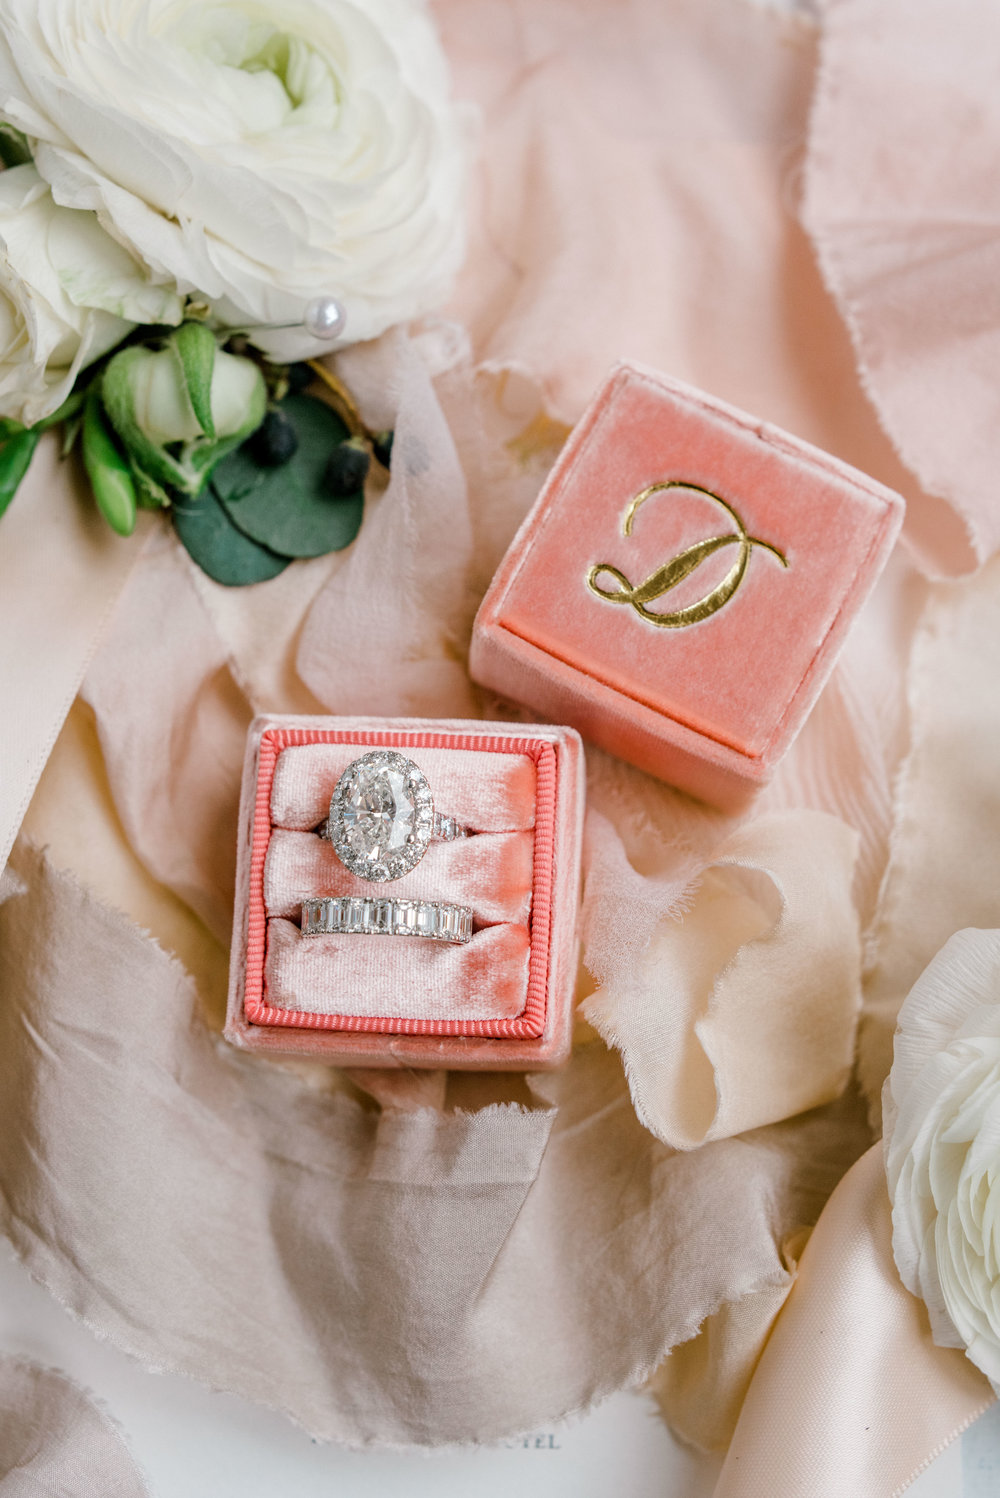 details-photography-dana-fernandez-ranunclus-mrs-box-engagment-ring-wedding-band-silk-ribbon-floral-greenery-by-maxit-flower-design-houston-texas